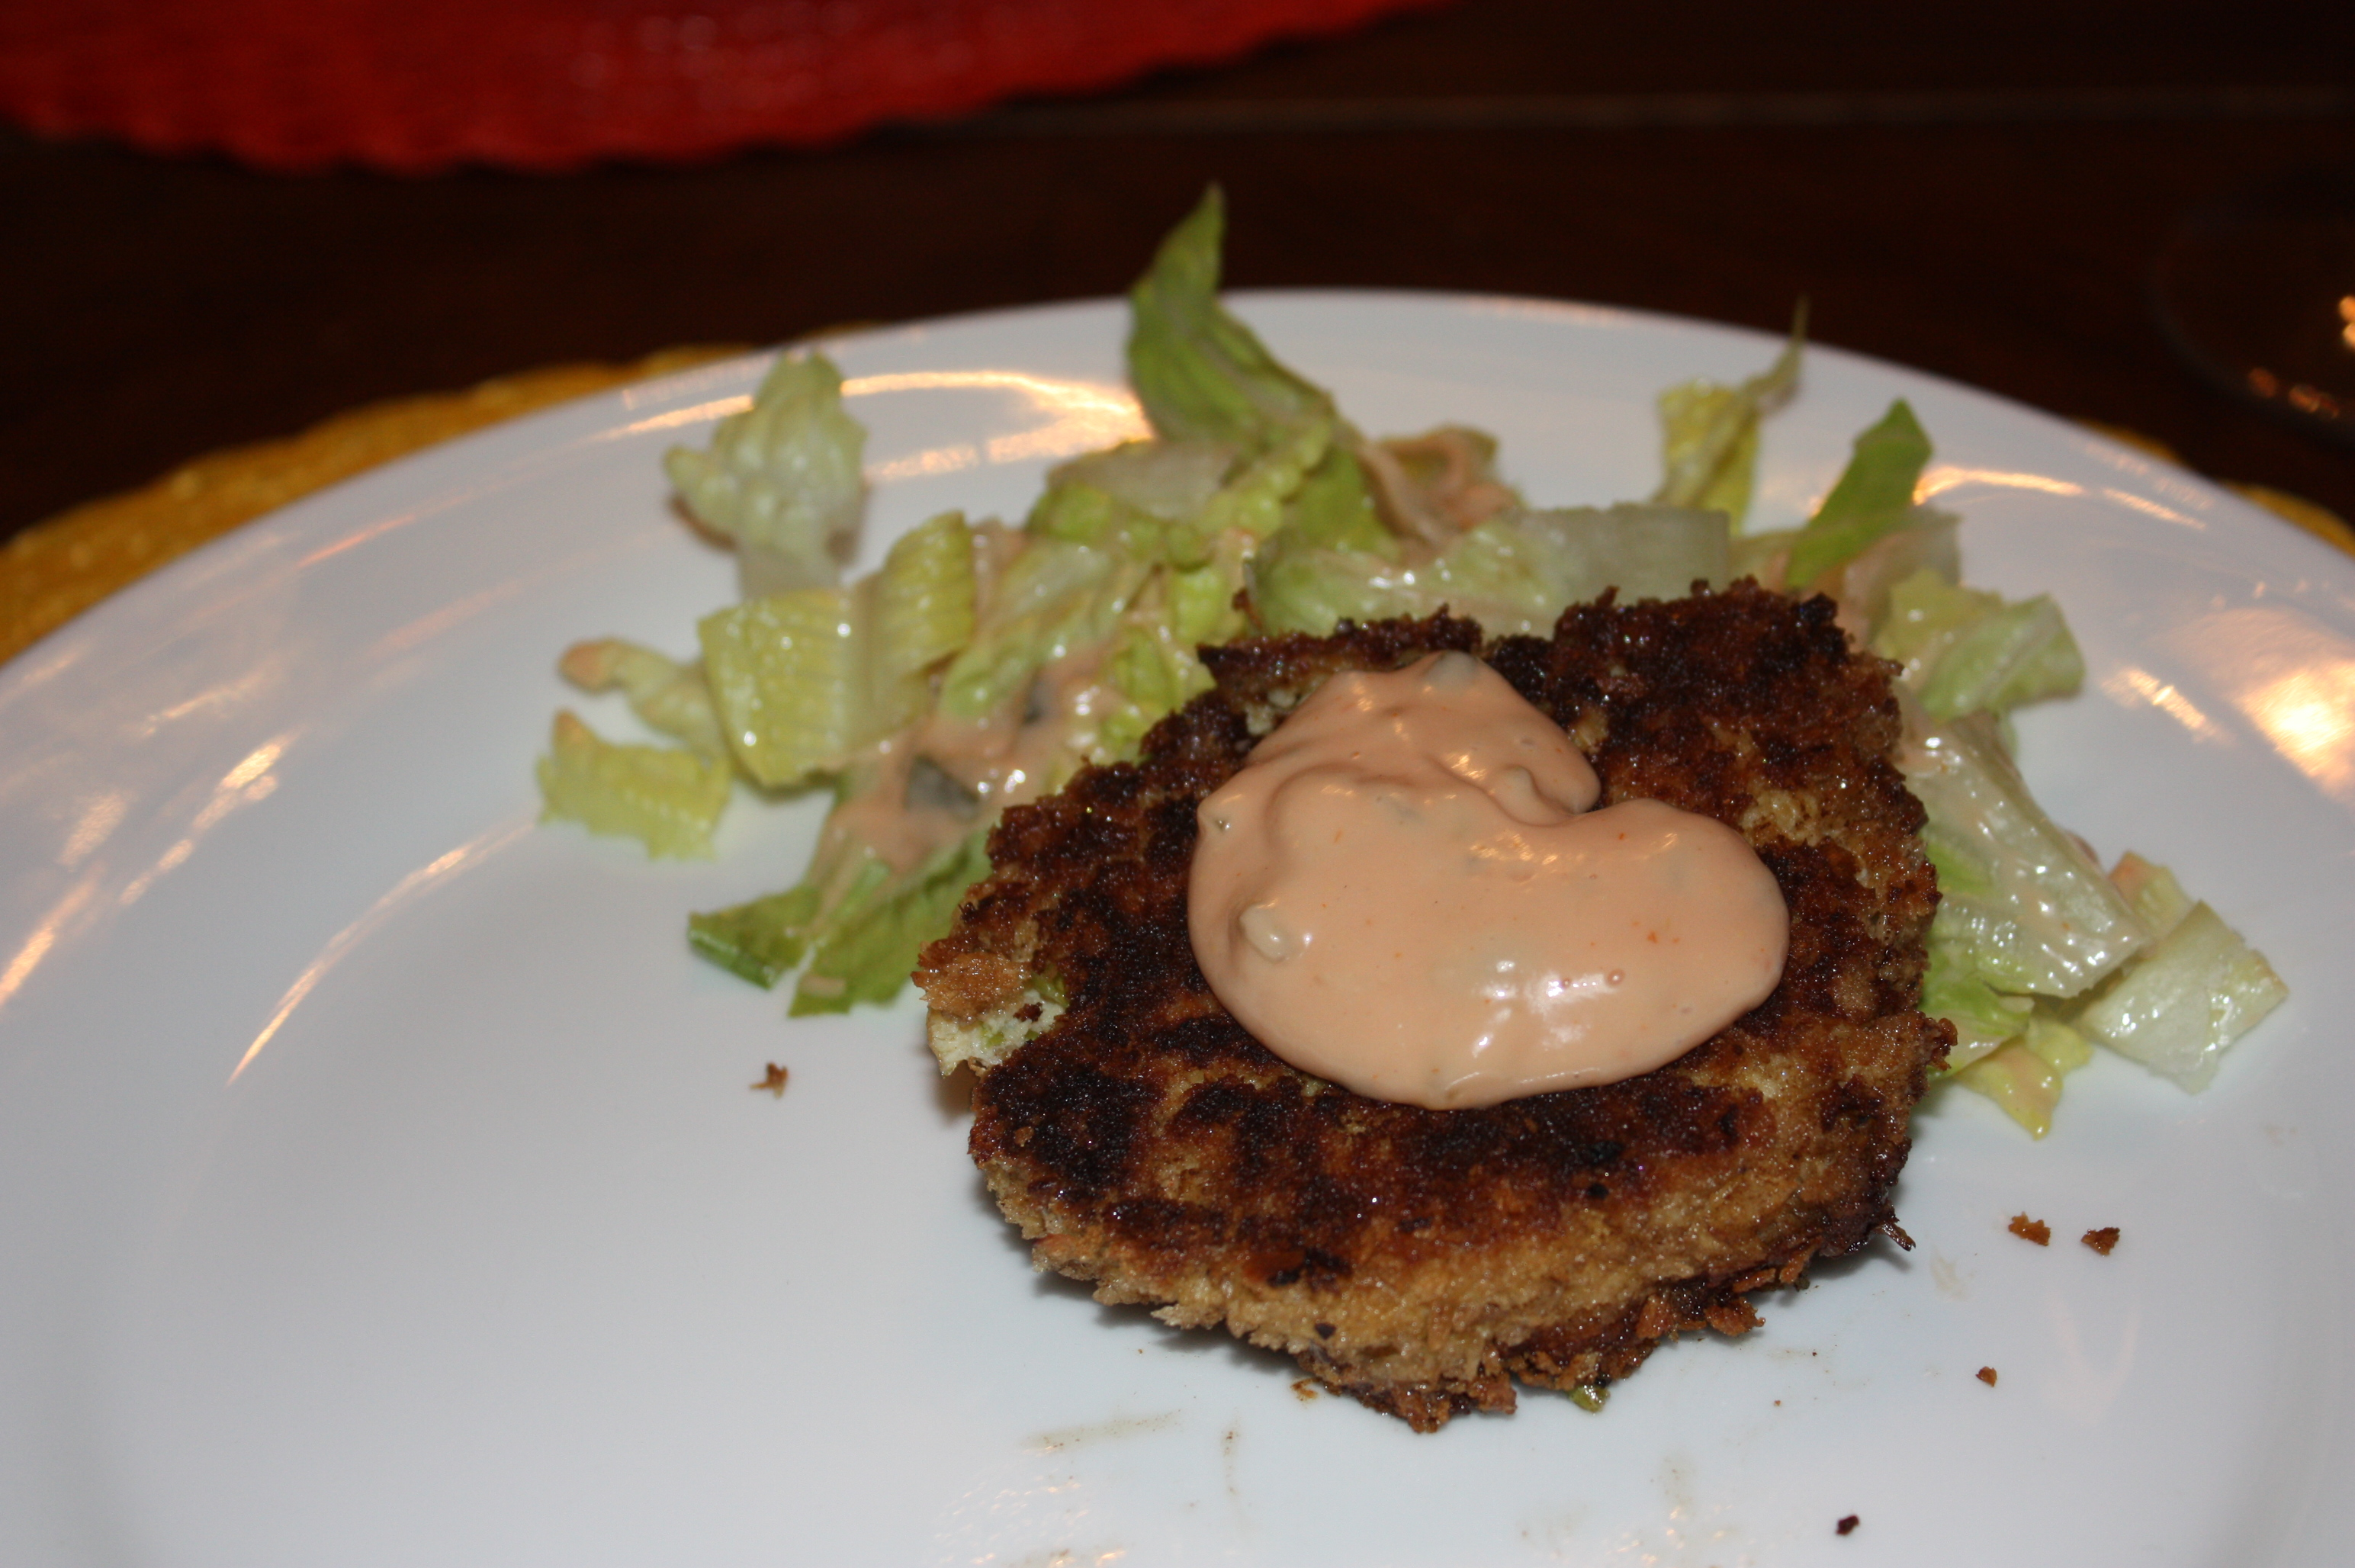 crab cakes from canned crab